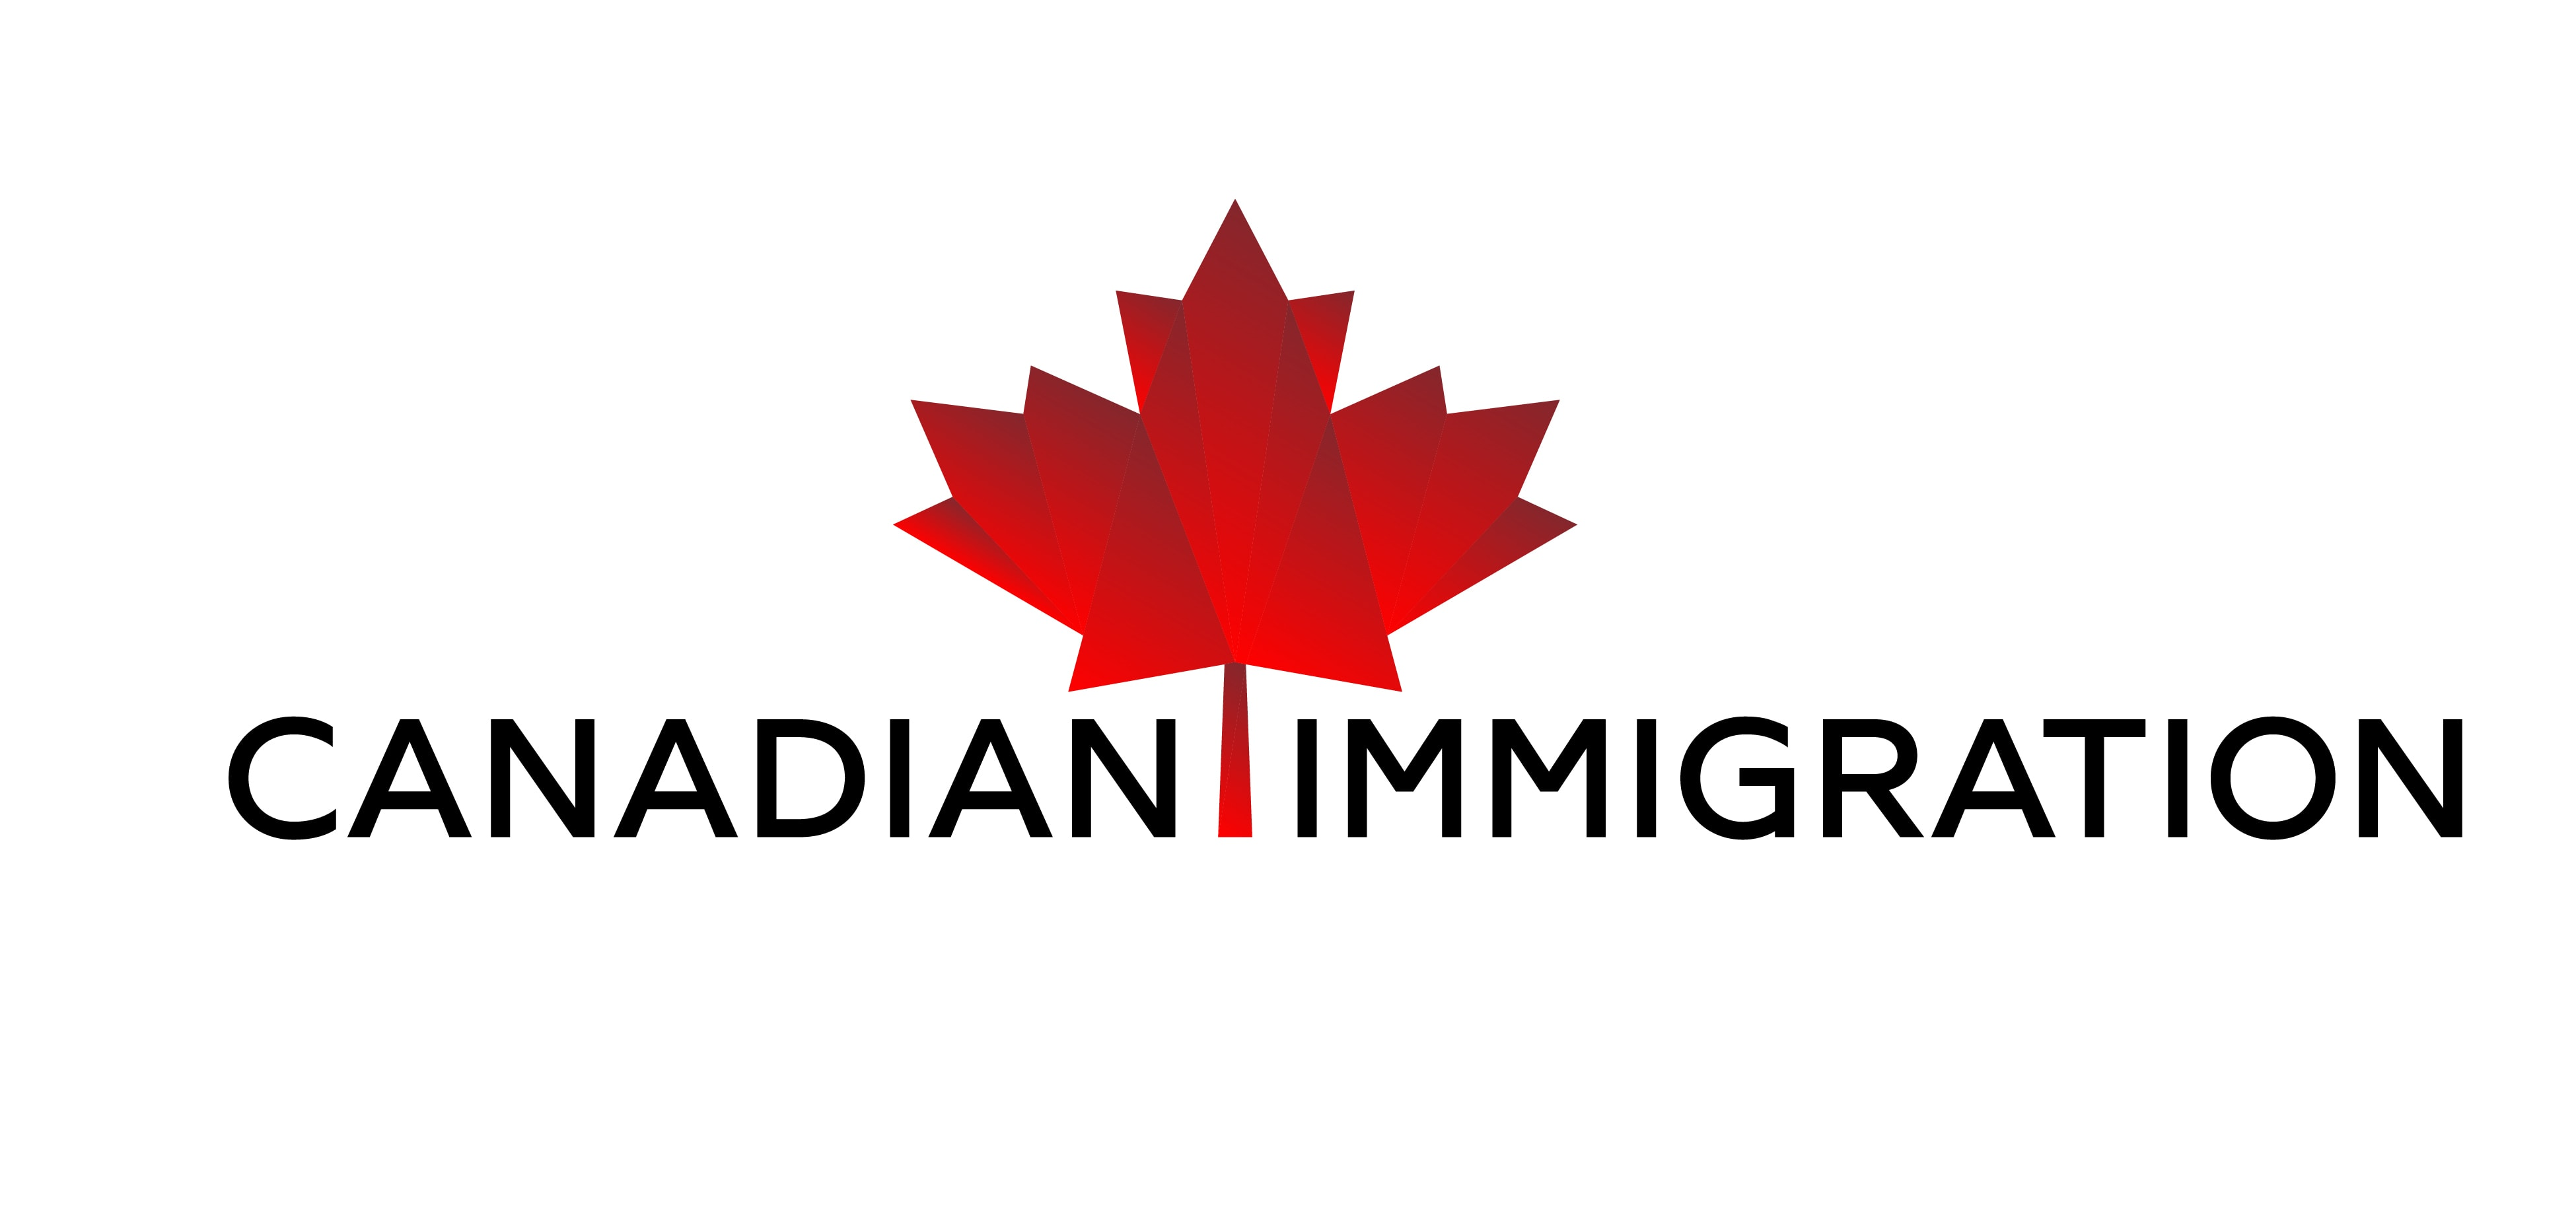 Canada's Immigration System Could Do Better